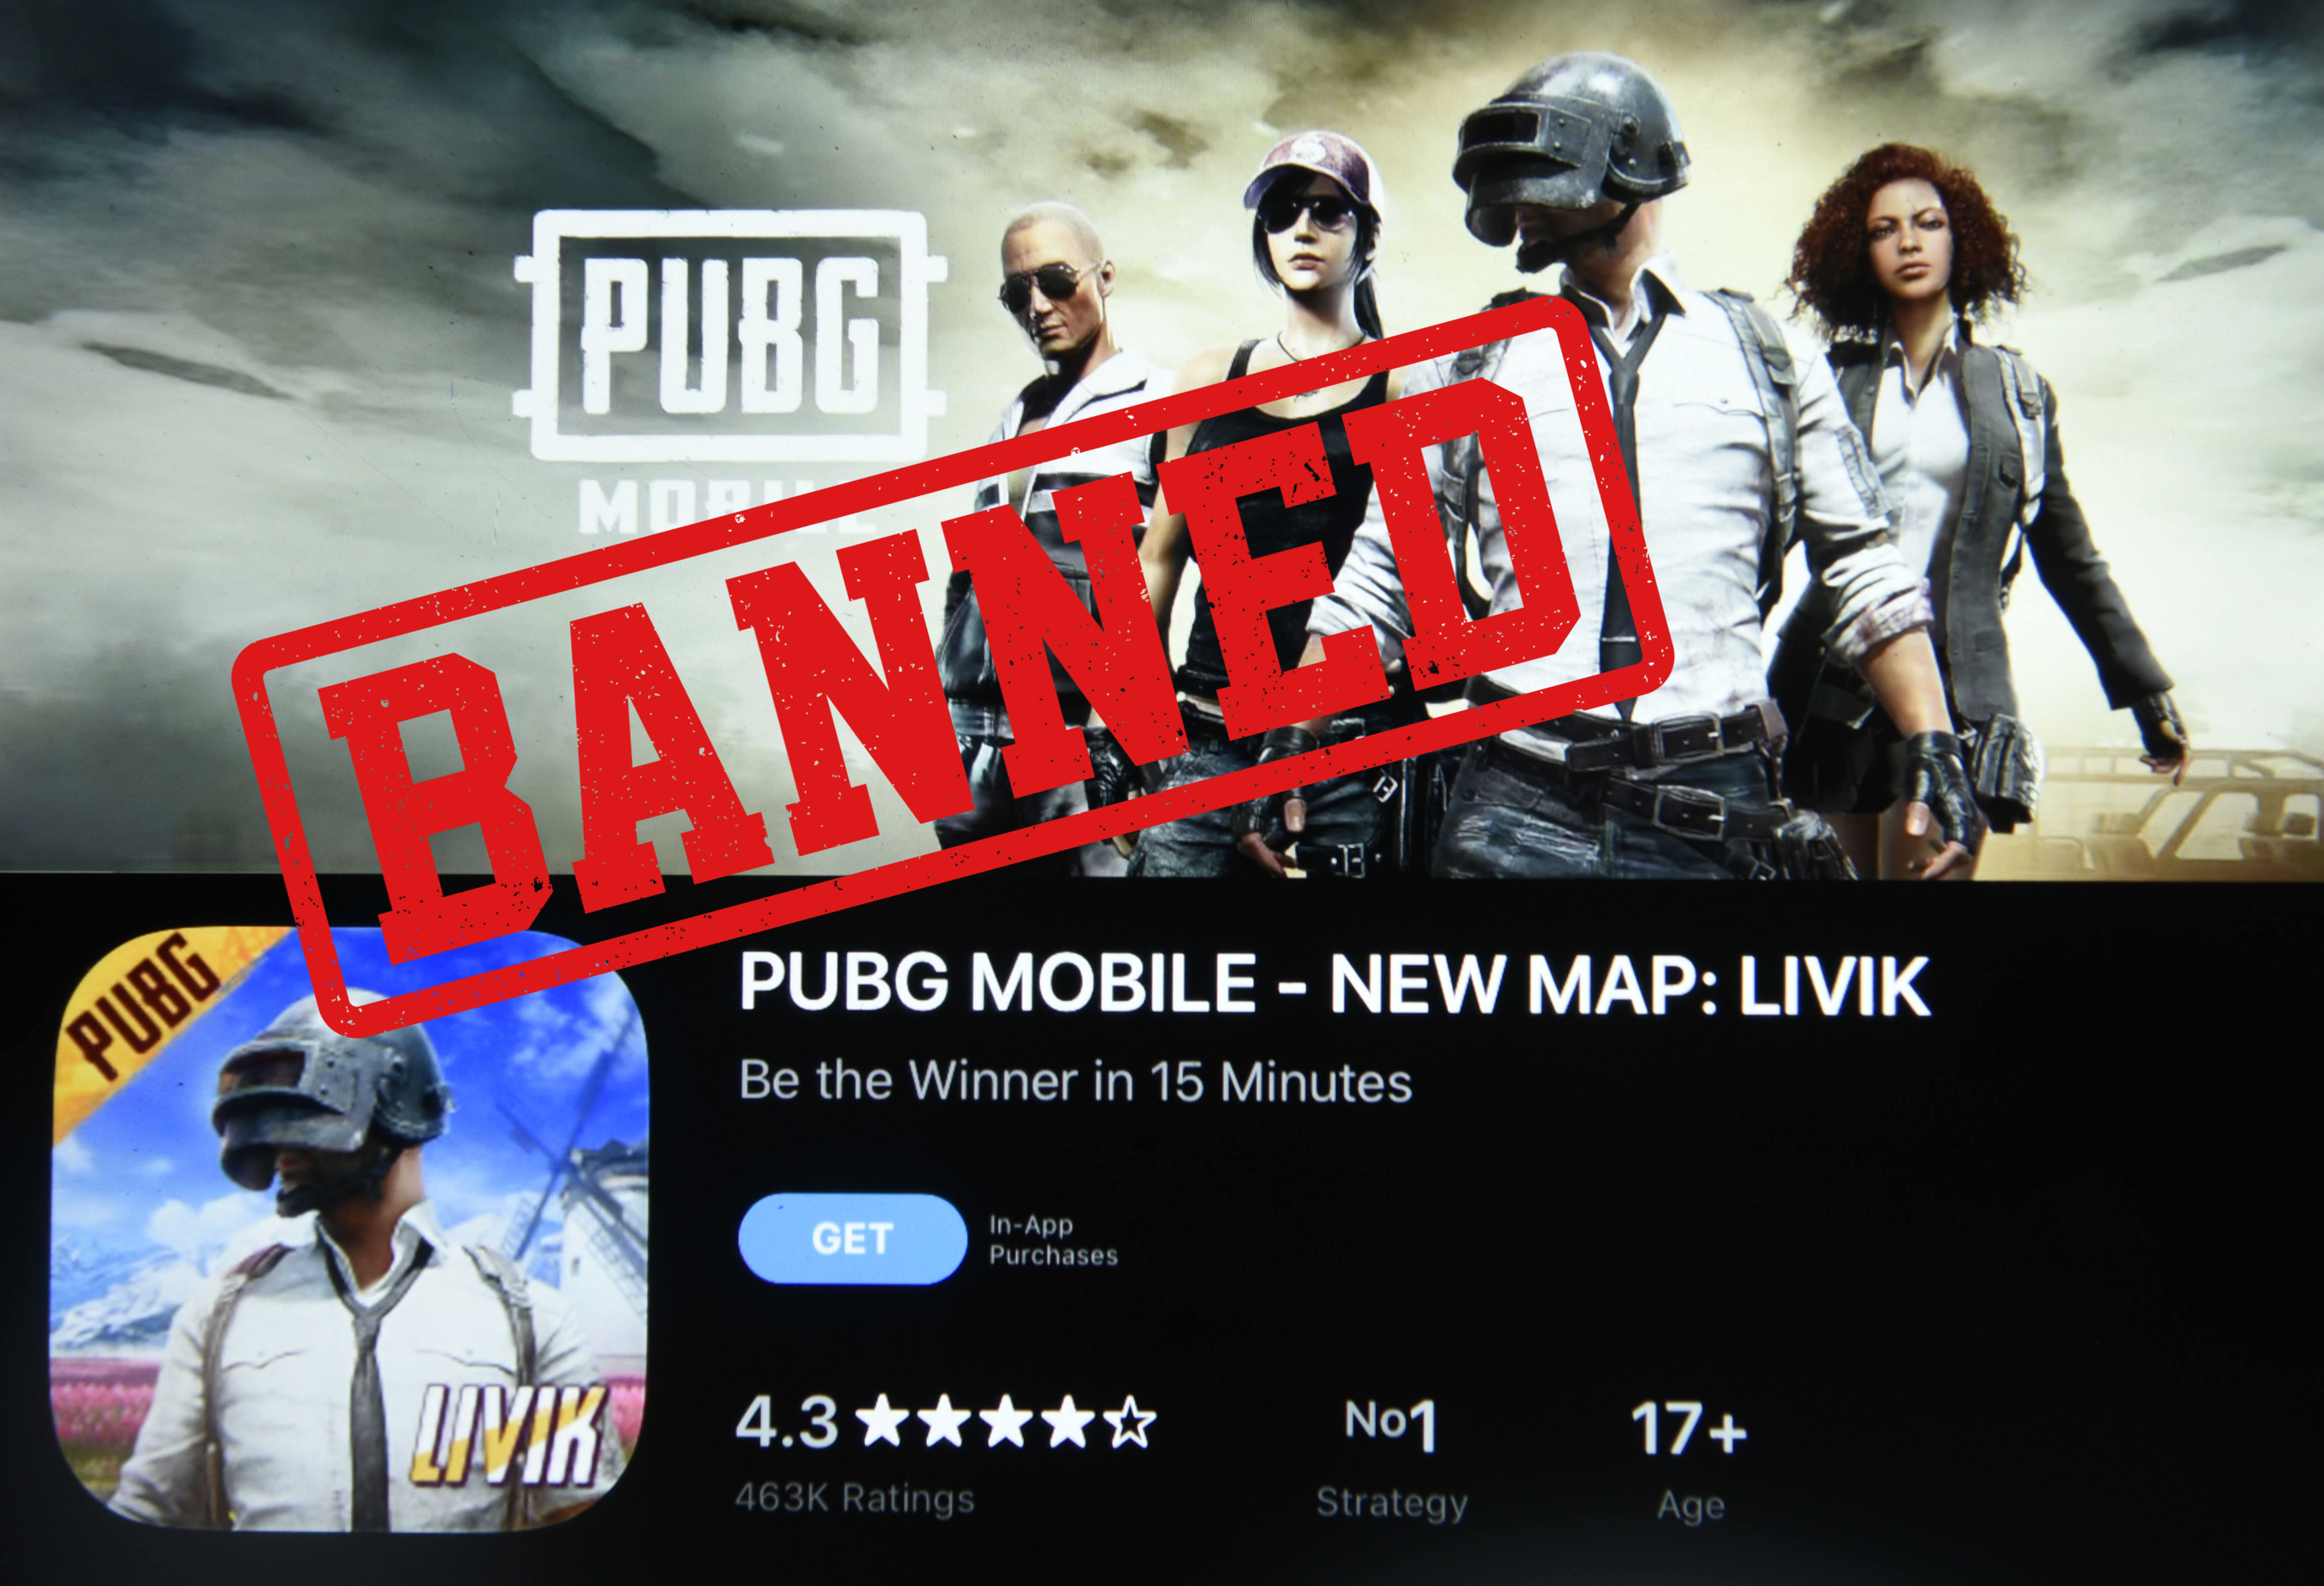 PUBG game owner distances itself from Tencent in bid to overturn India app ban – CNBC